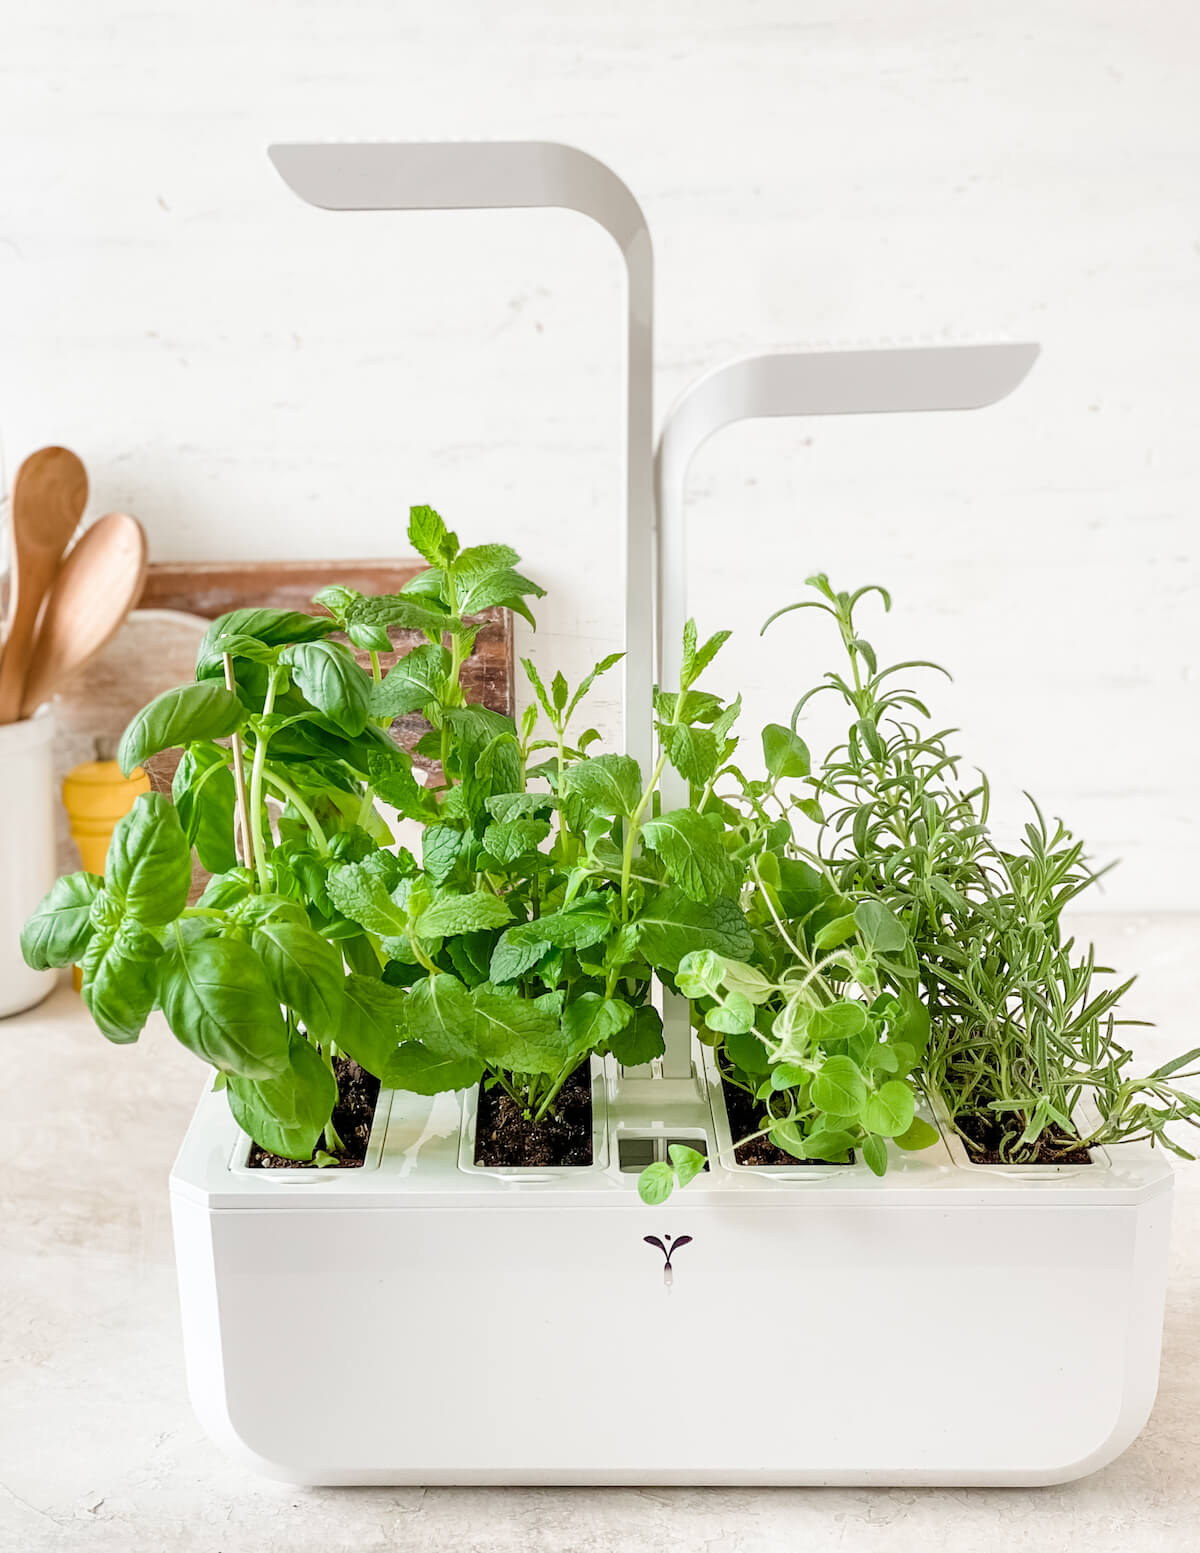 growing herbs indoors with lights